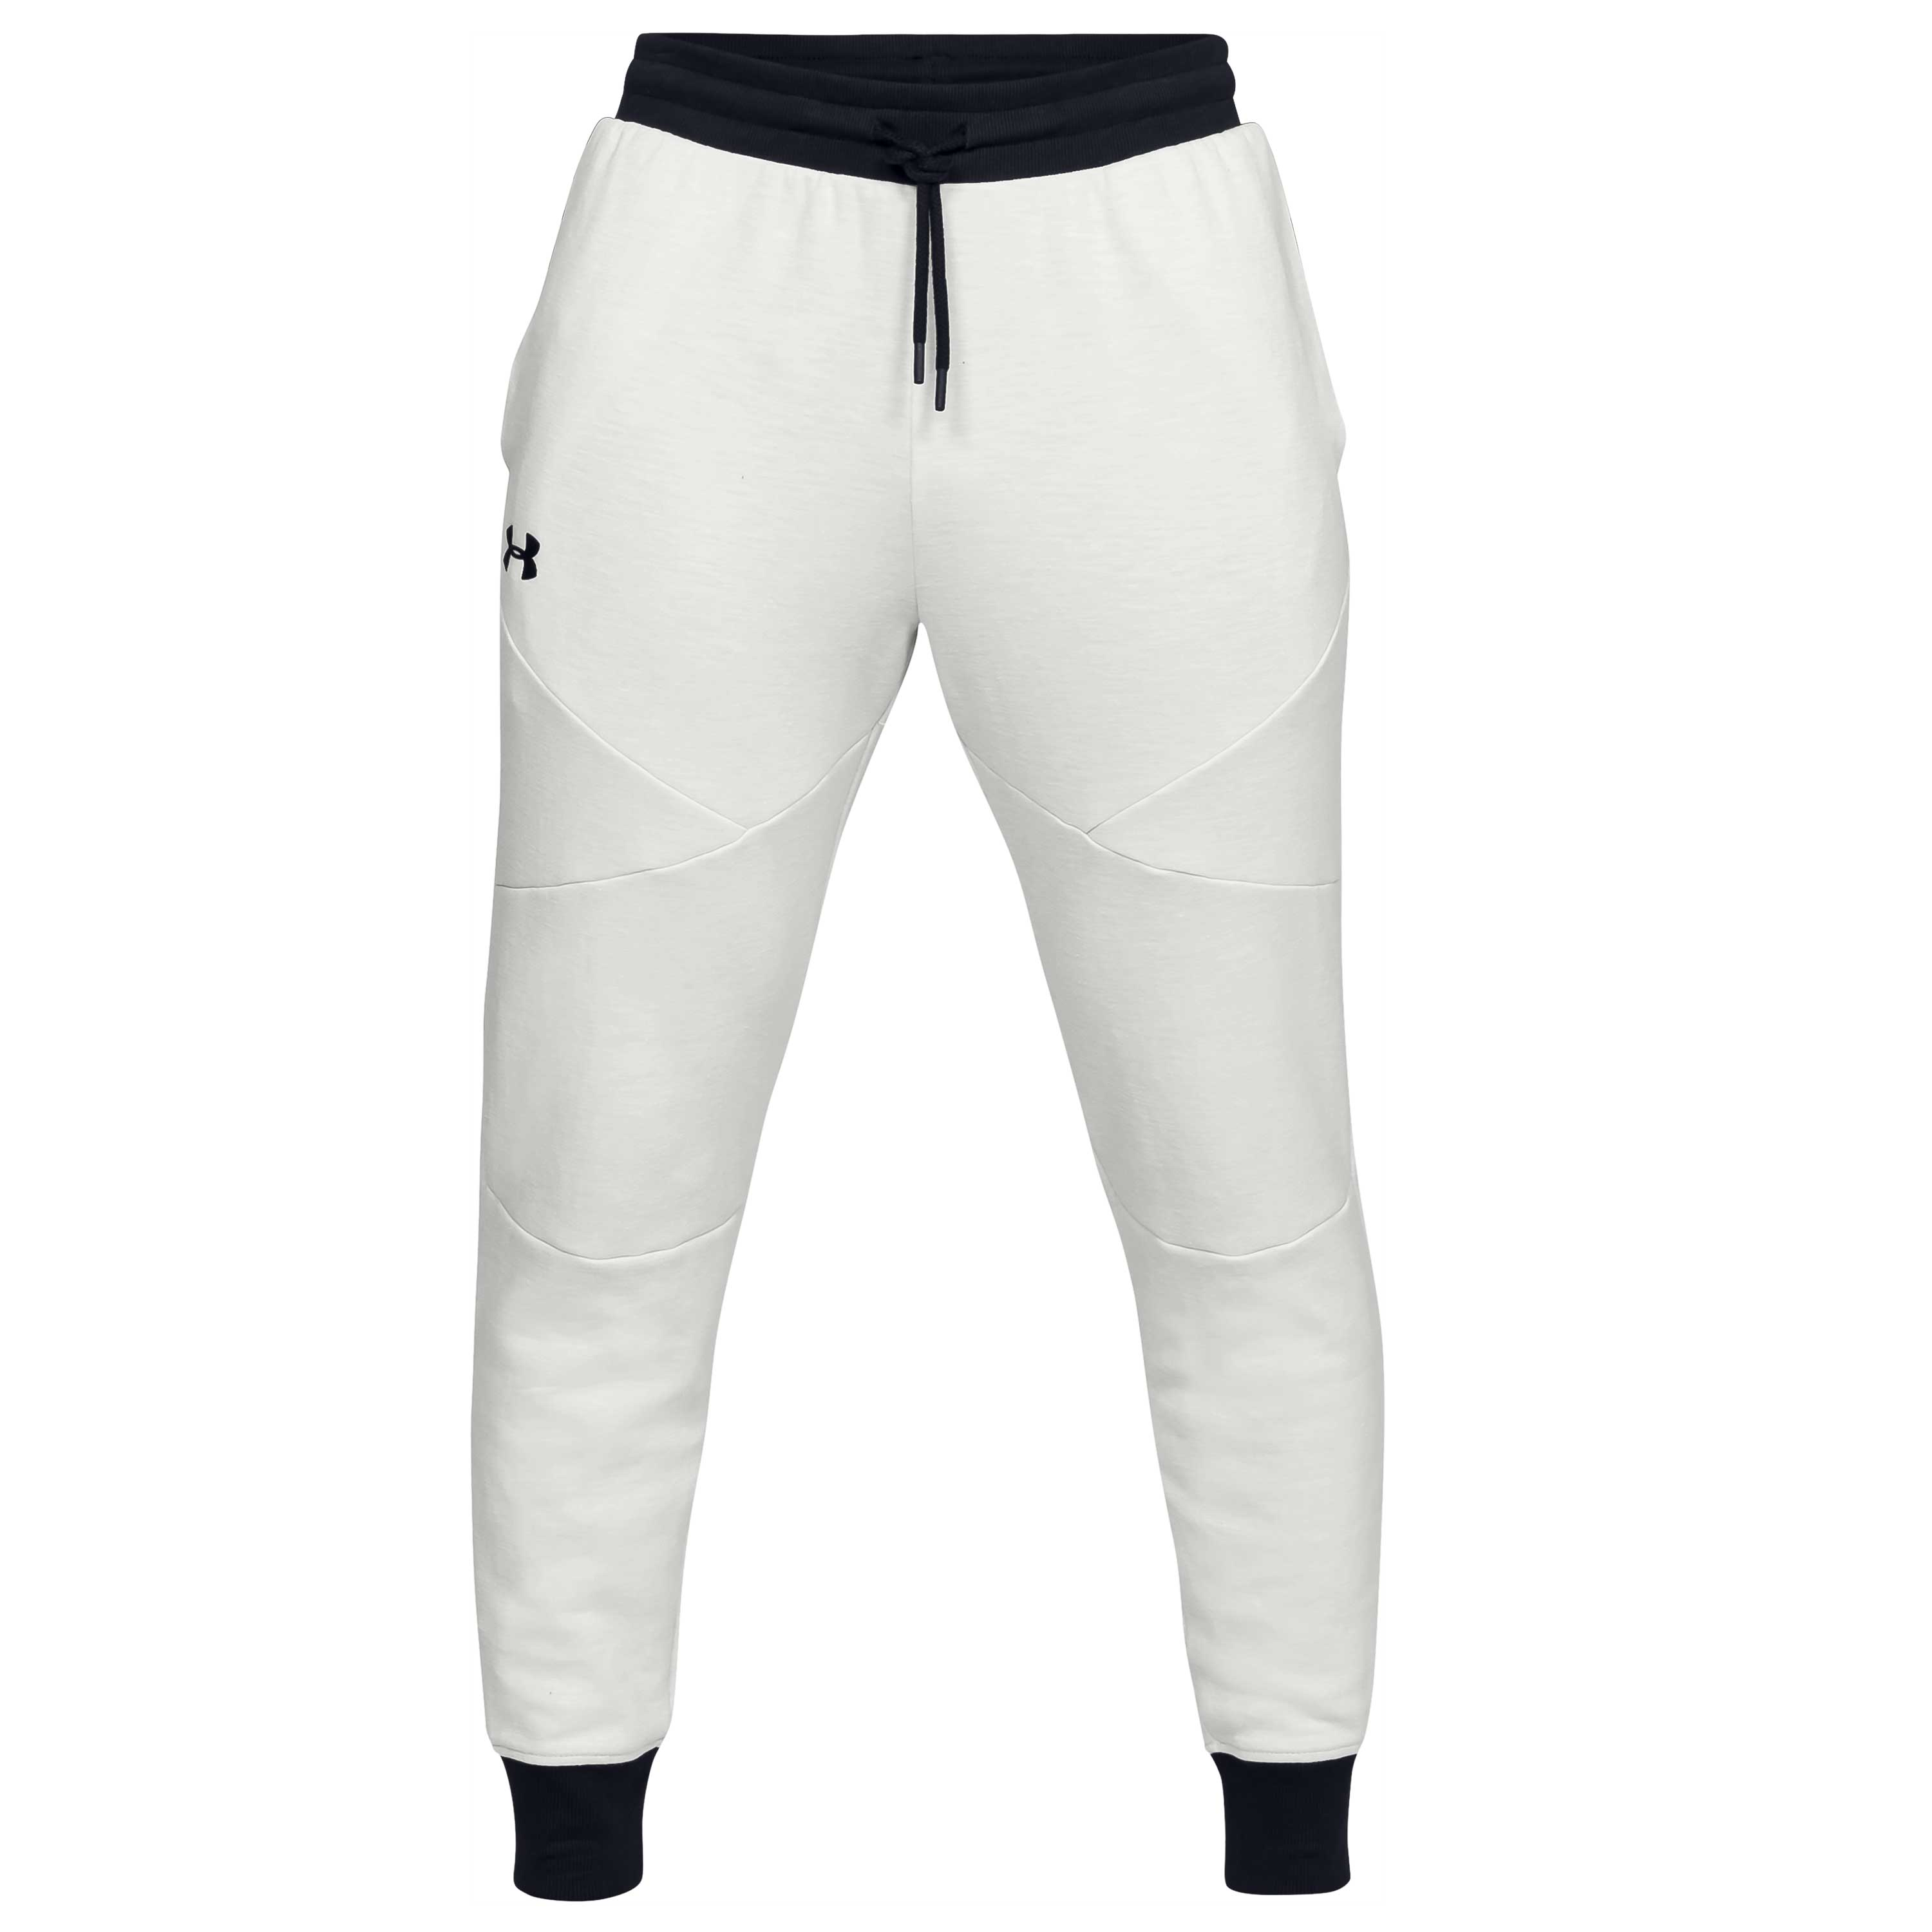 Under Armour Mens 2X Knit Joggers